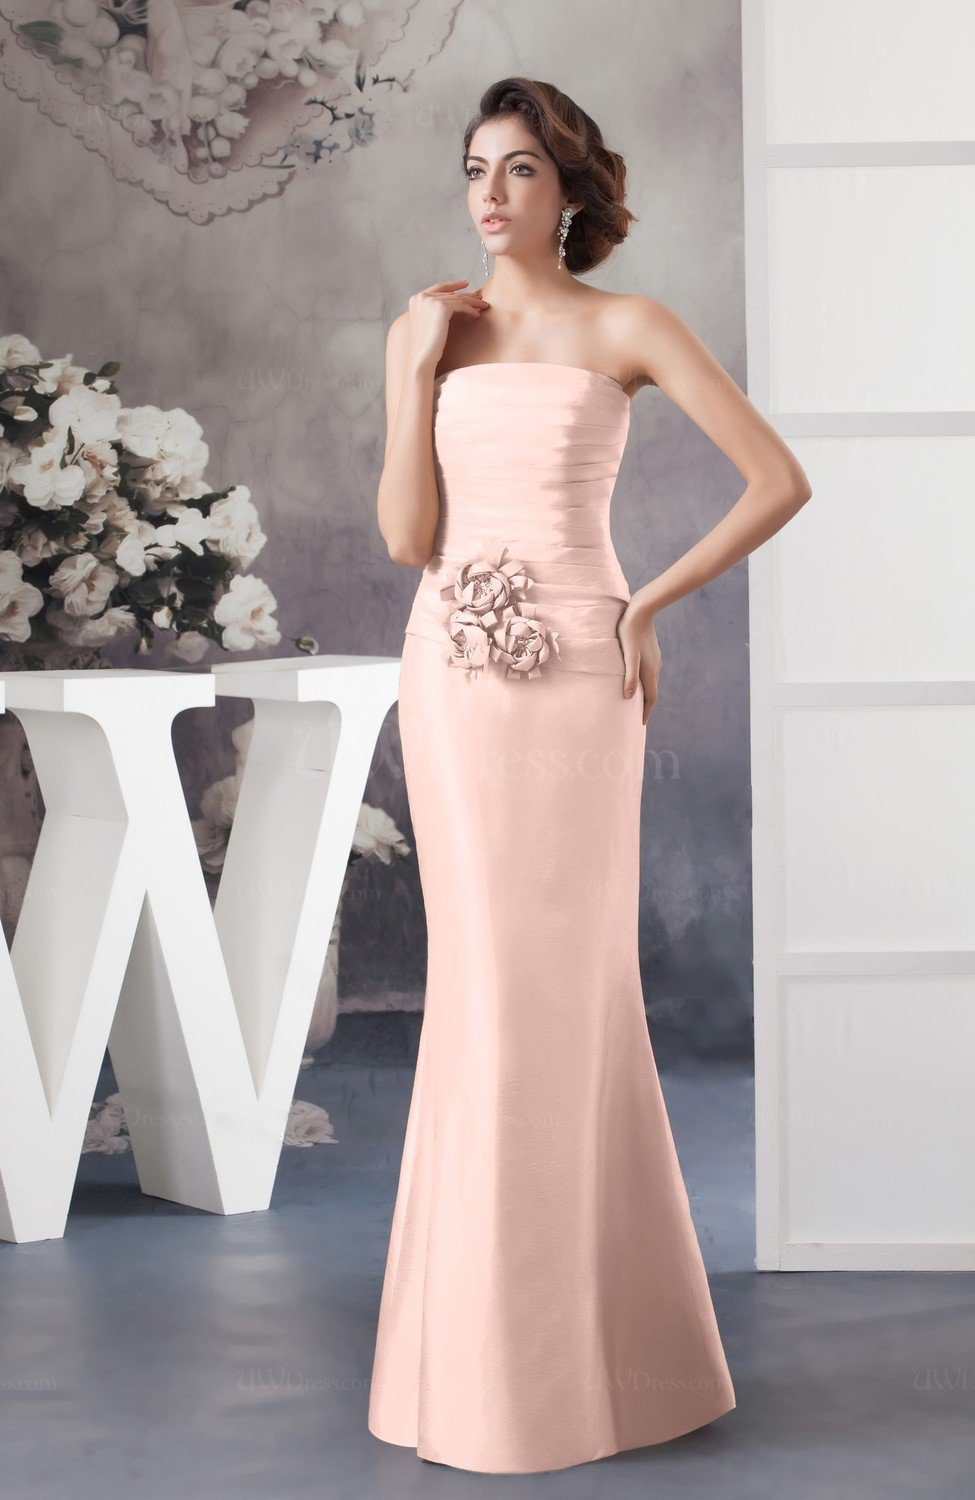 Pastel Pink Affordable Bridesmaid Dress Inexpensive Taffeta Outdoor ...